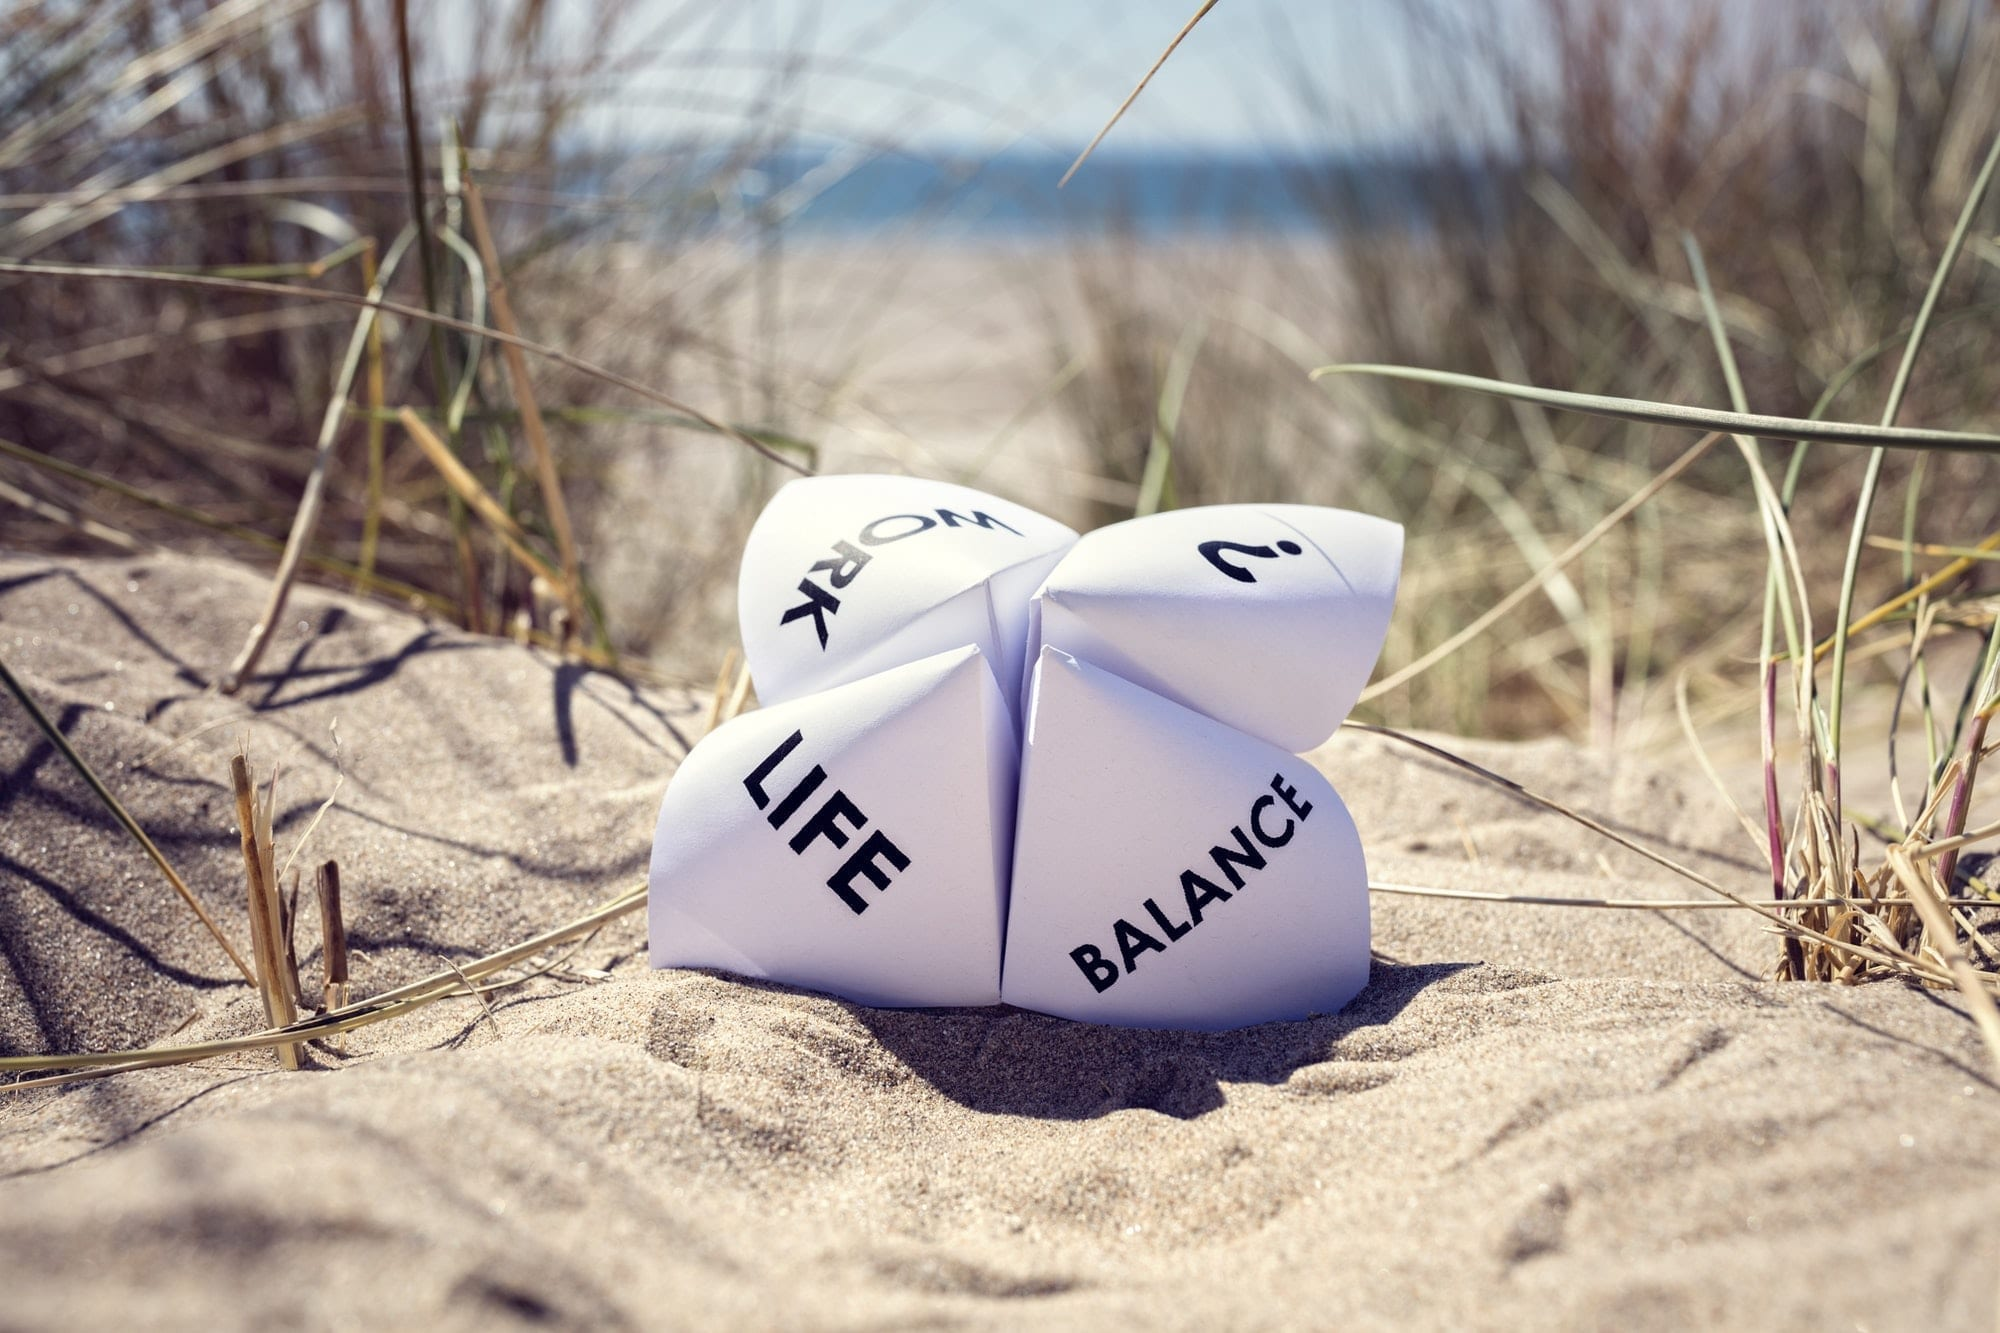 Paper fortune teller showing work life balance